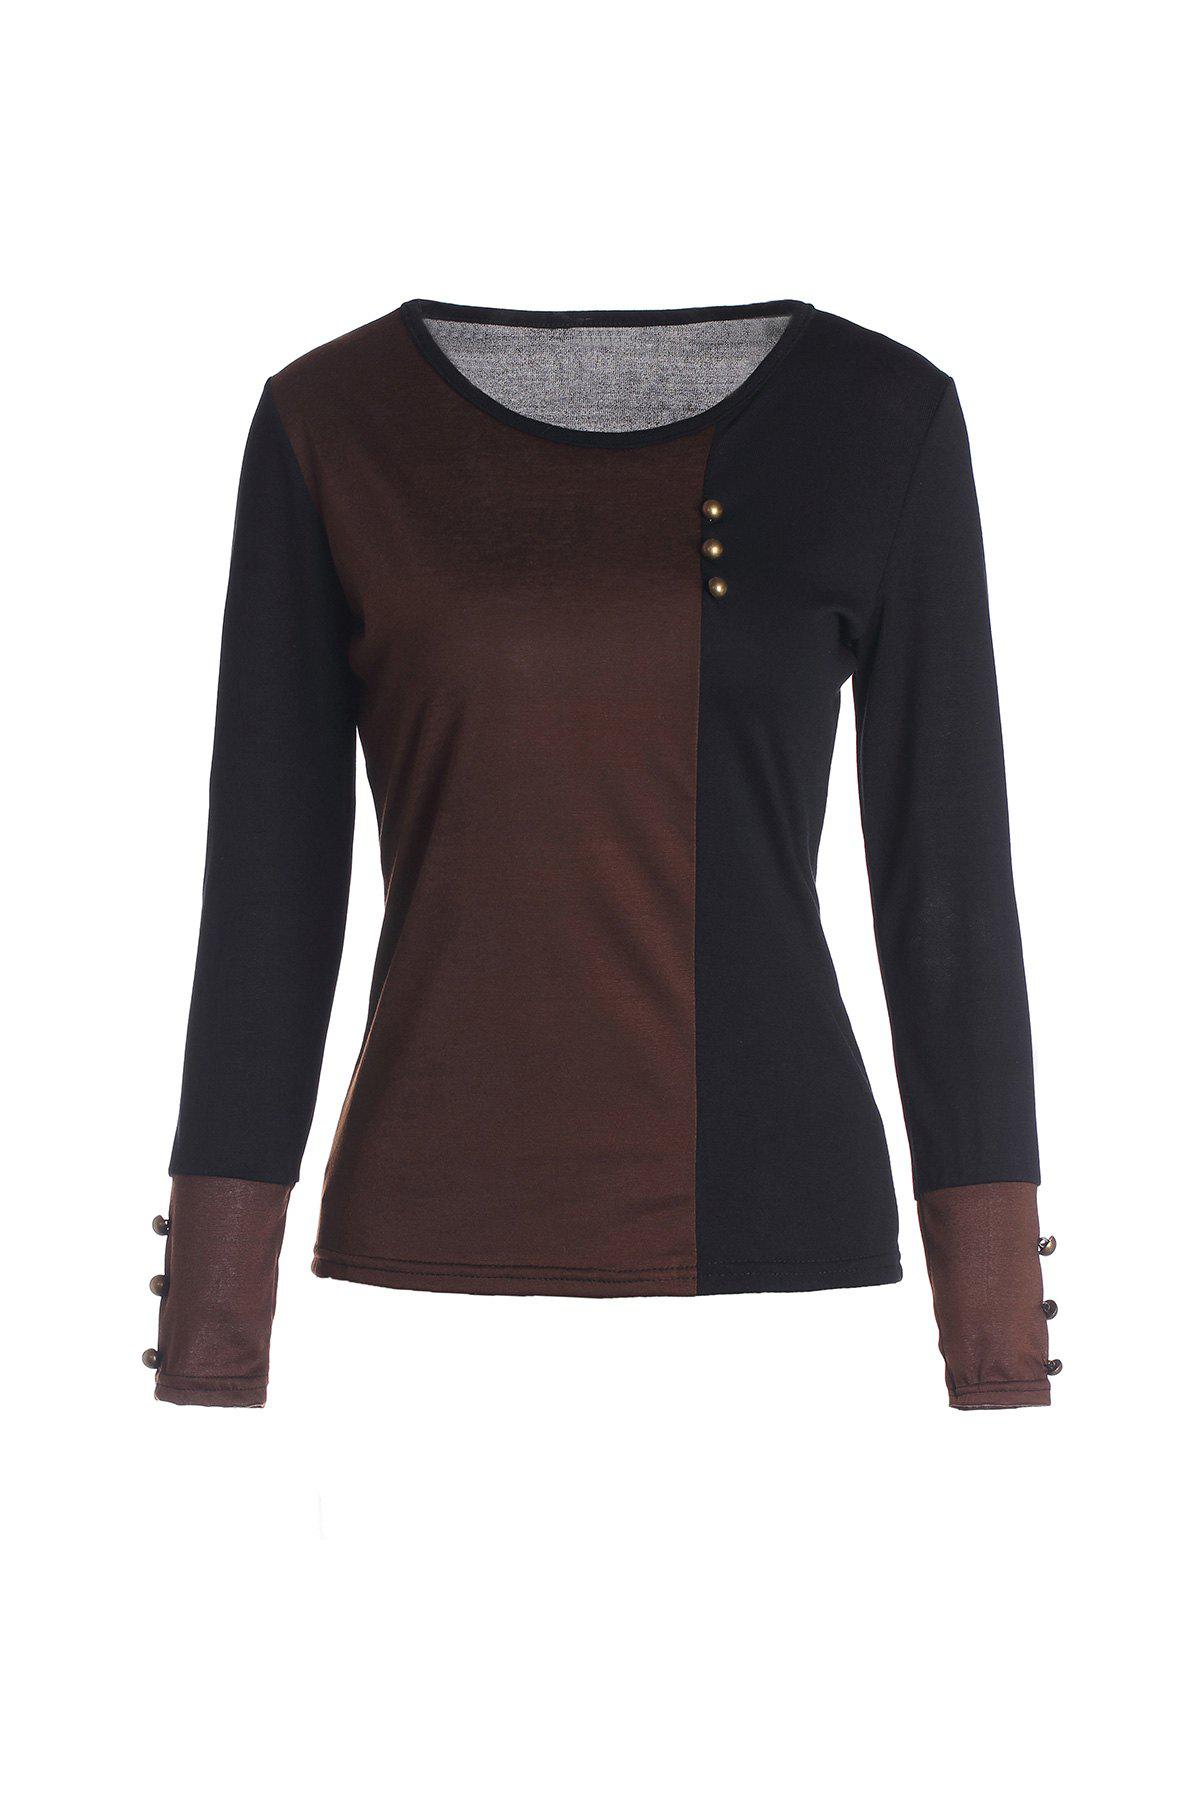 Women's O-Neck Cotton Multicolor Simple Design Comfortable Ladylike - COFFEE S